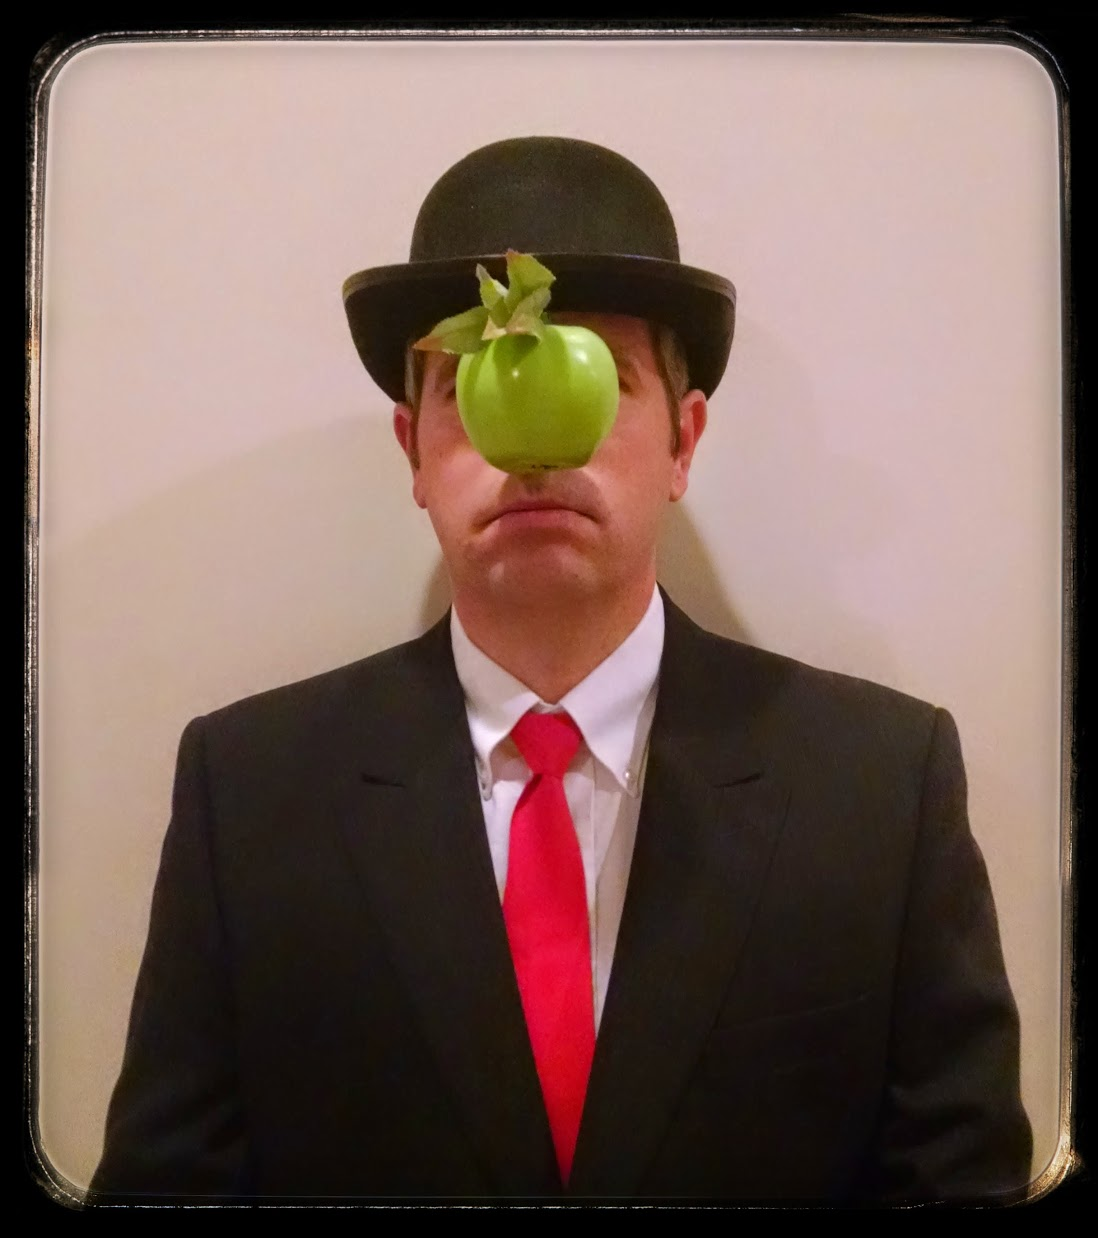 Matt Cutts dressed as Rene Magritte's Son of Man painting